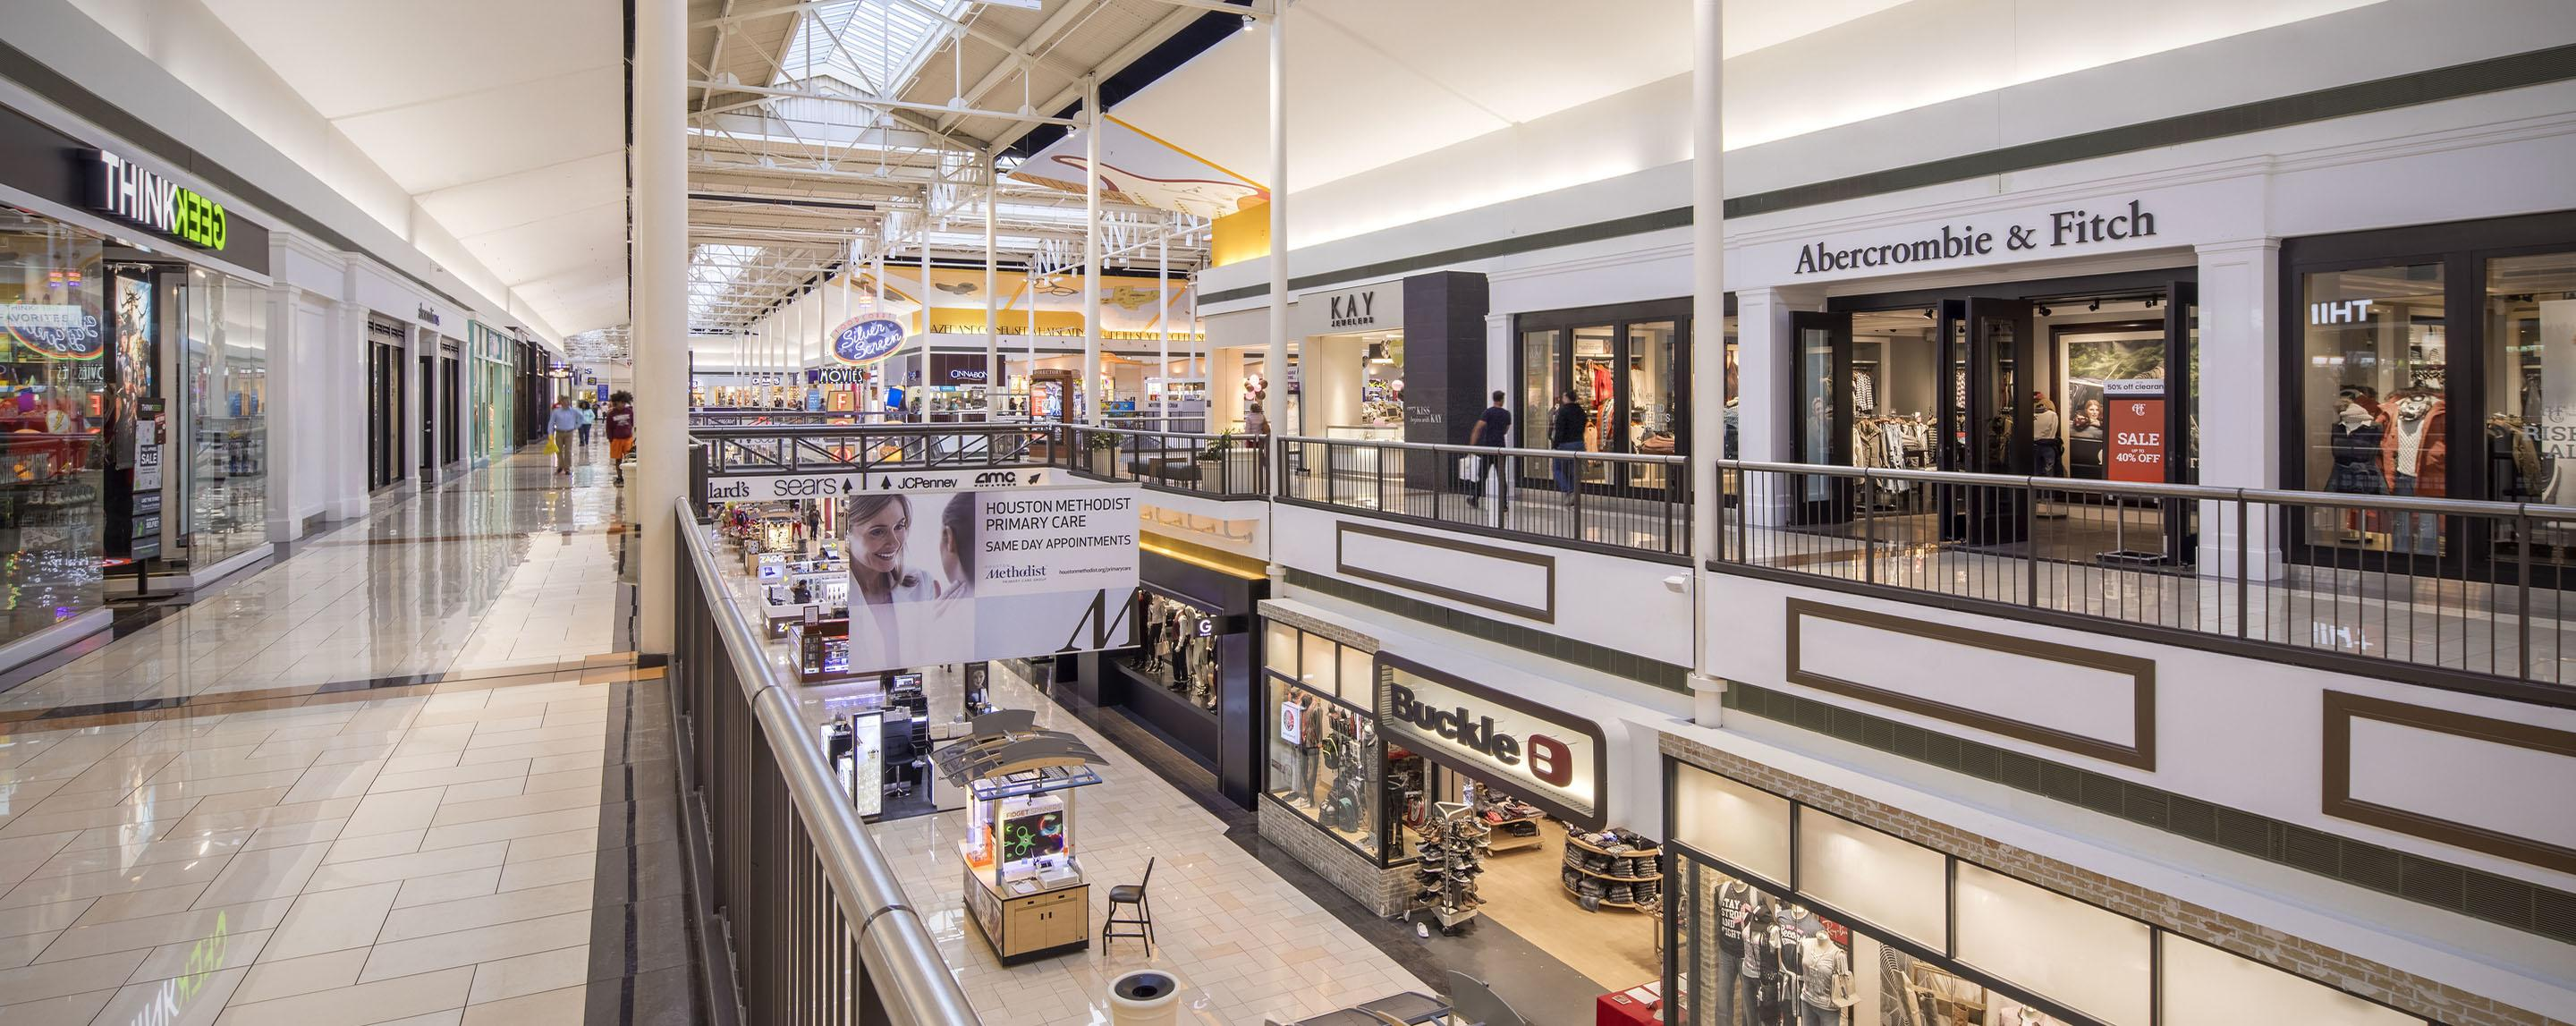 Abercrombie & Fitch, ThinkGeek, Buckly, and Kay Jewelers are retail stores in a two-story indoor mall with a skylight roof.